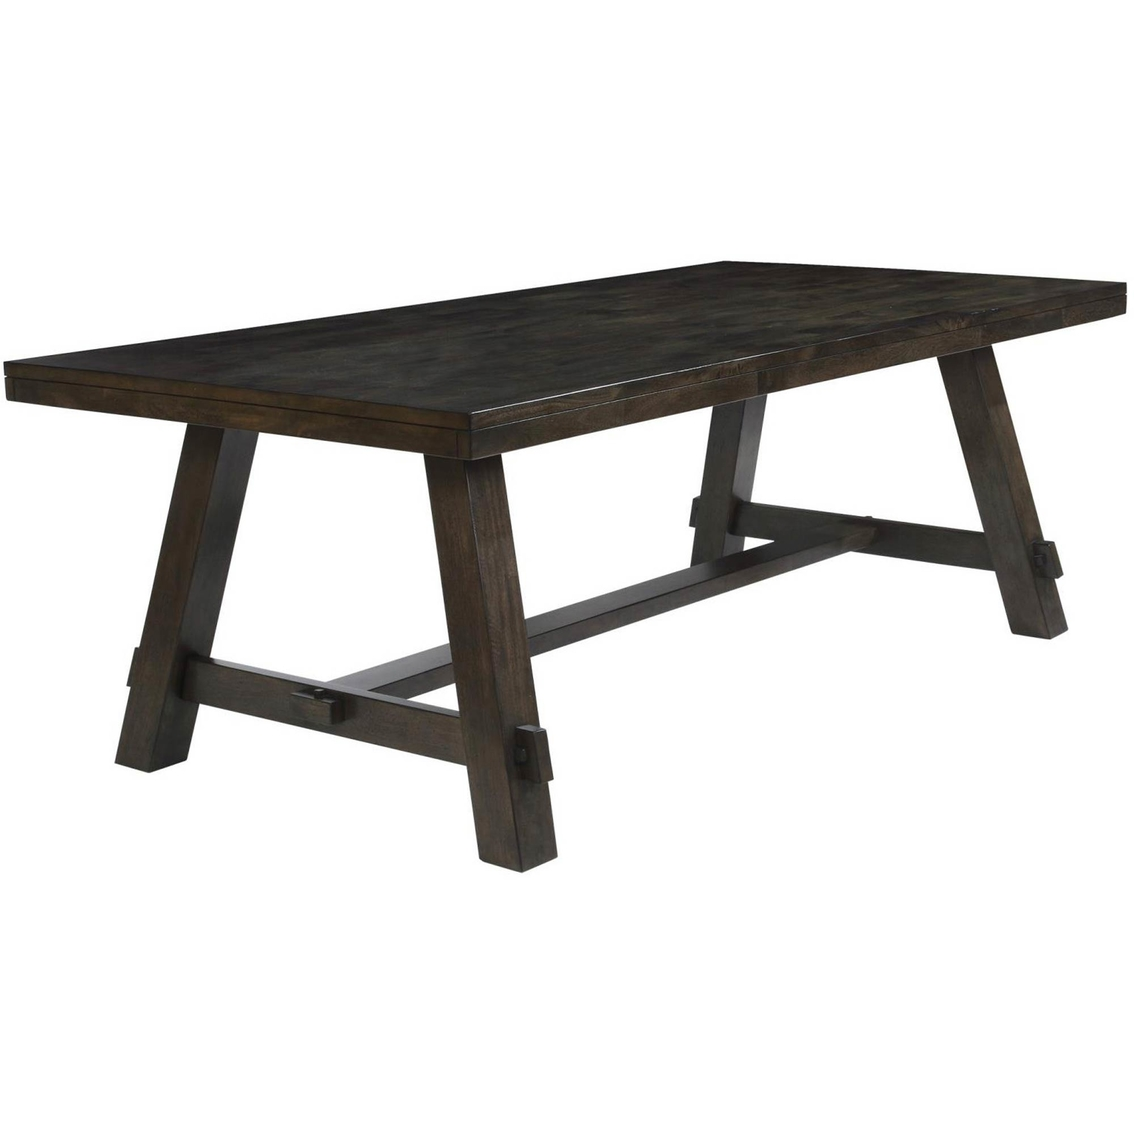 Chelsea Home Furniture Brooke View Dining Table Dining Tables